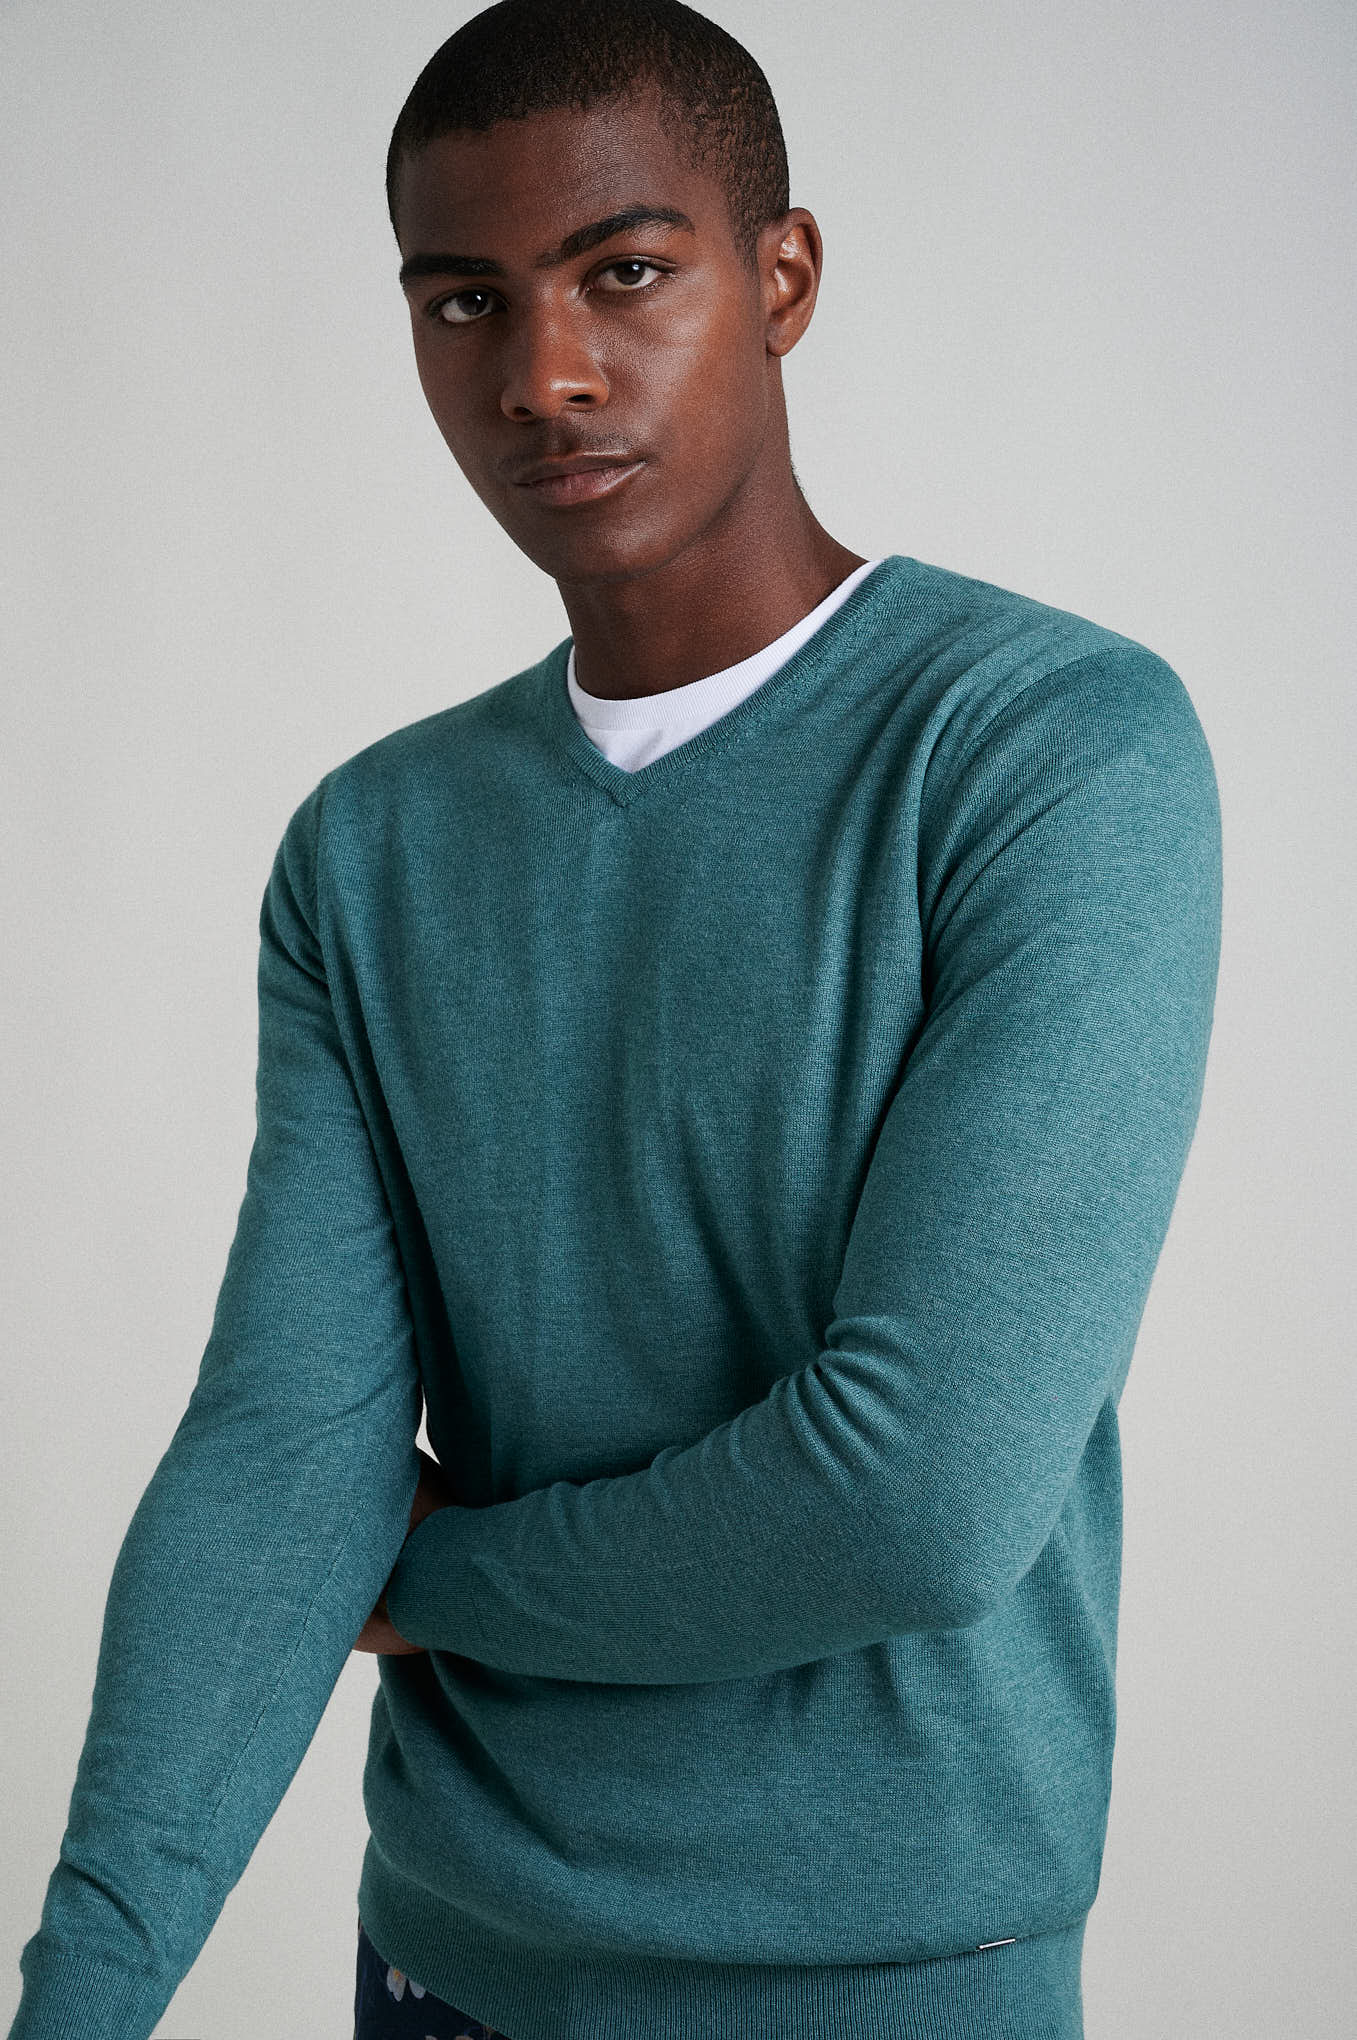 Sweater Teal Casual Man